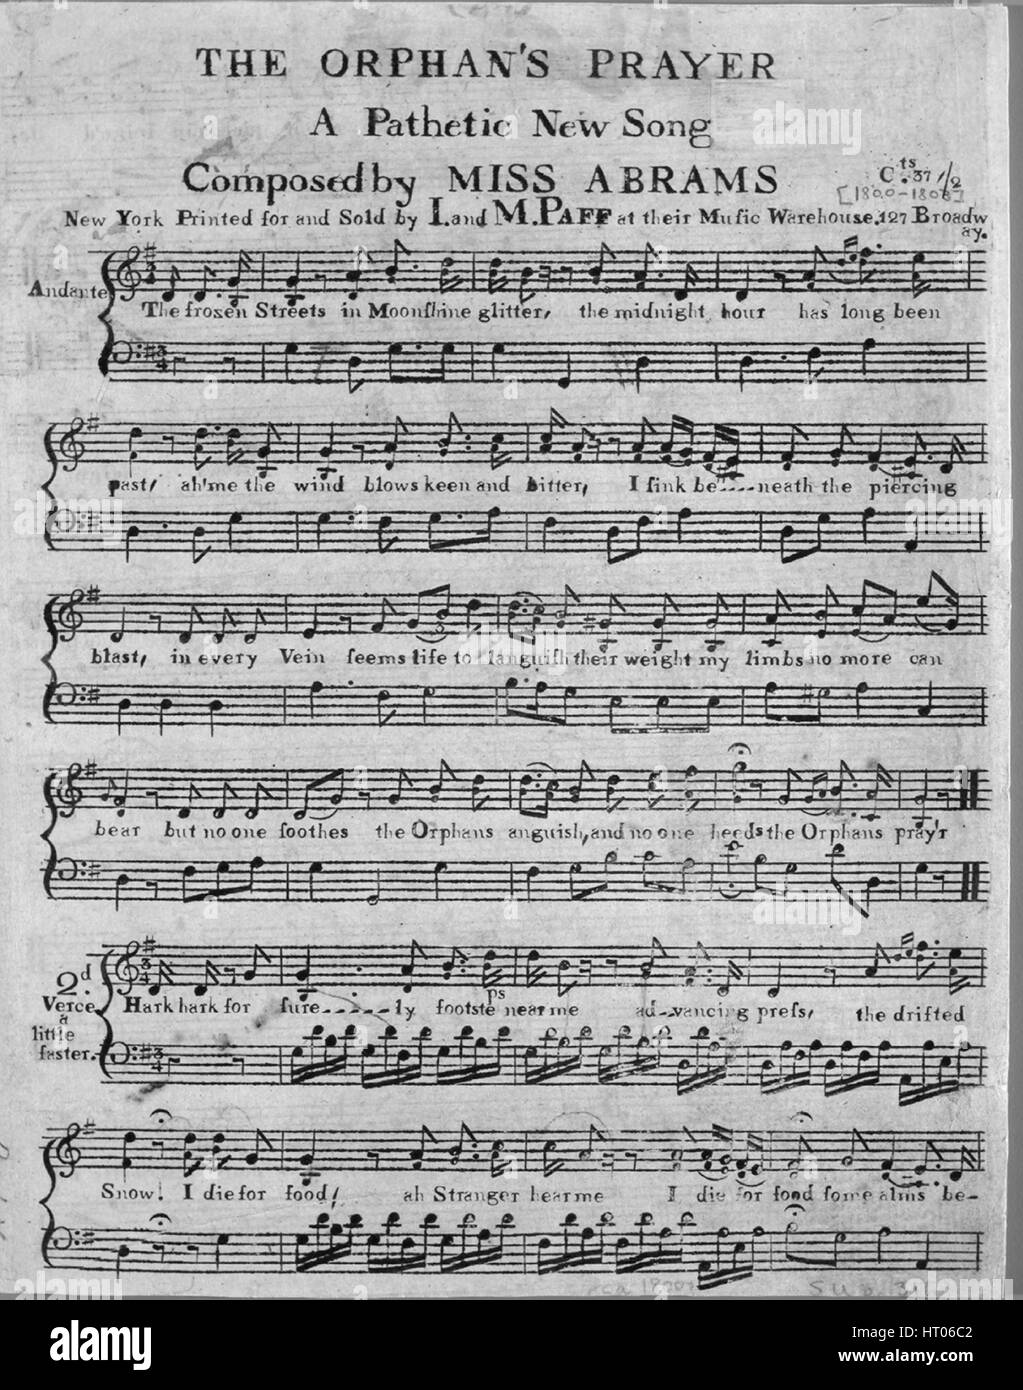 Sheet music cover image of the song 'The Orphan's Prayer A Pathetic New Song', with original authorship - Stock Image